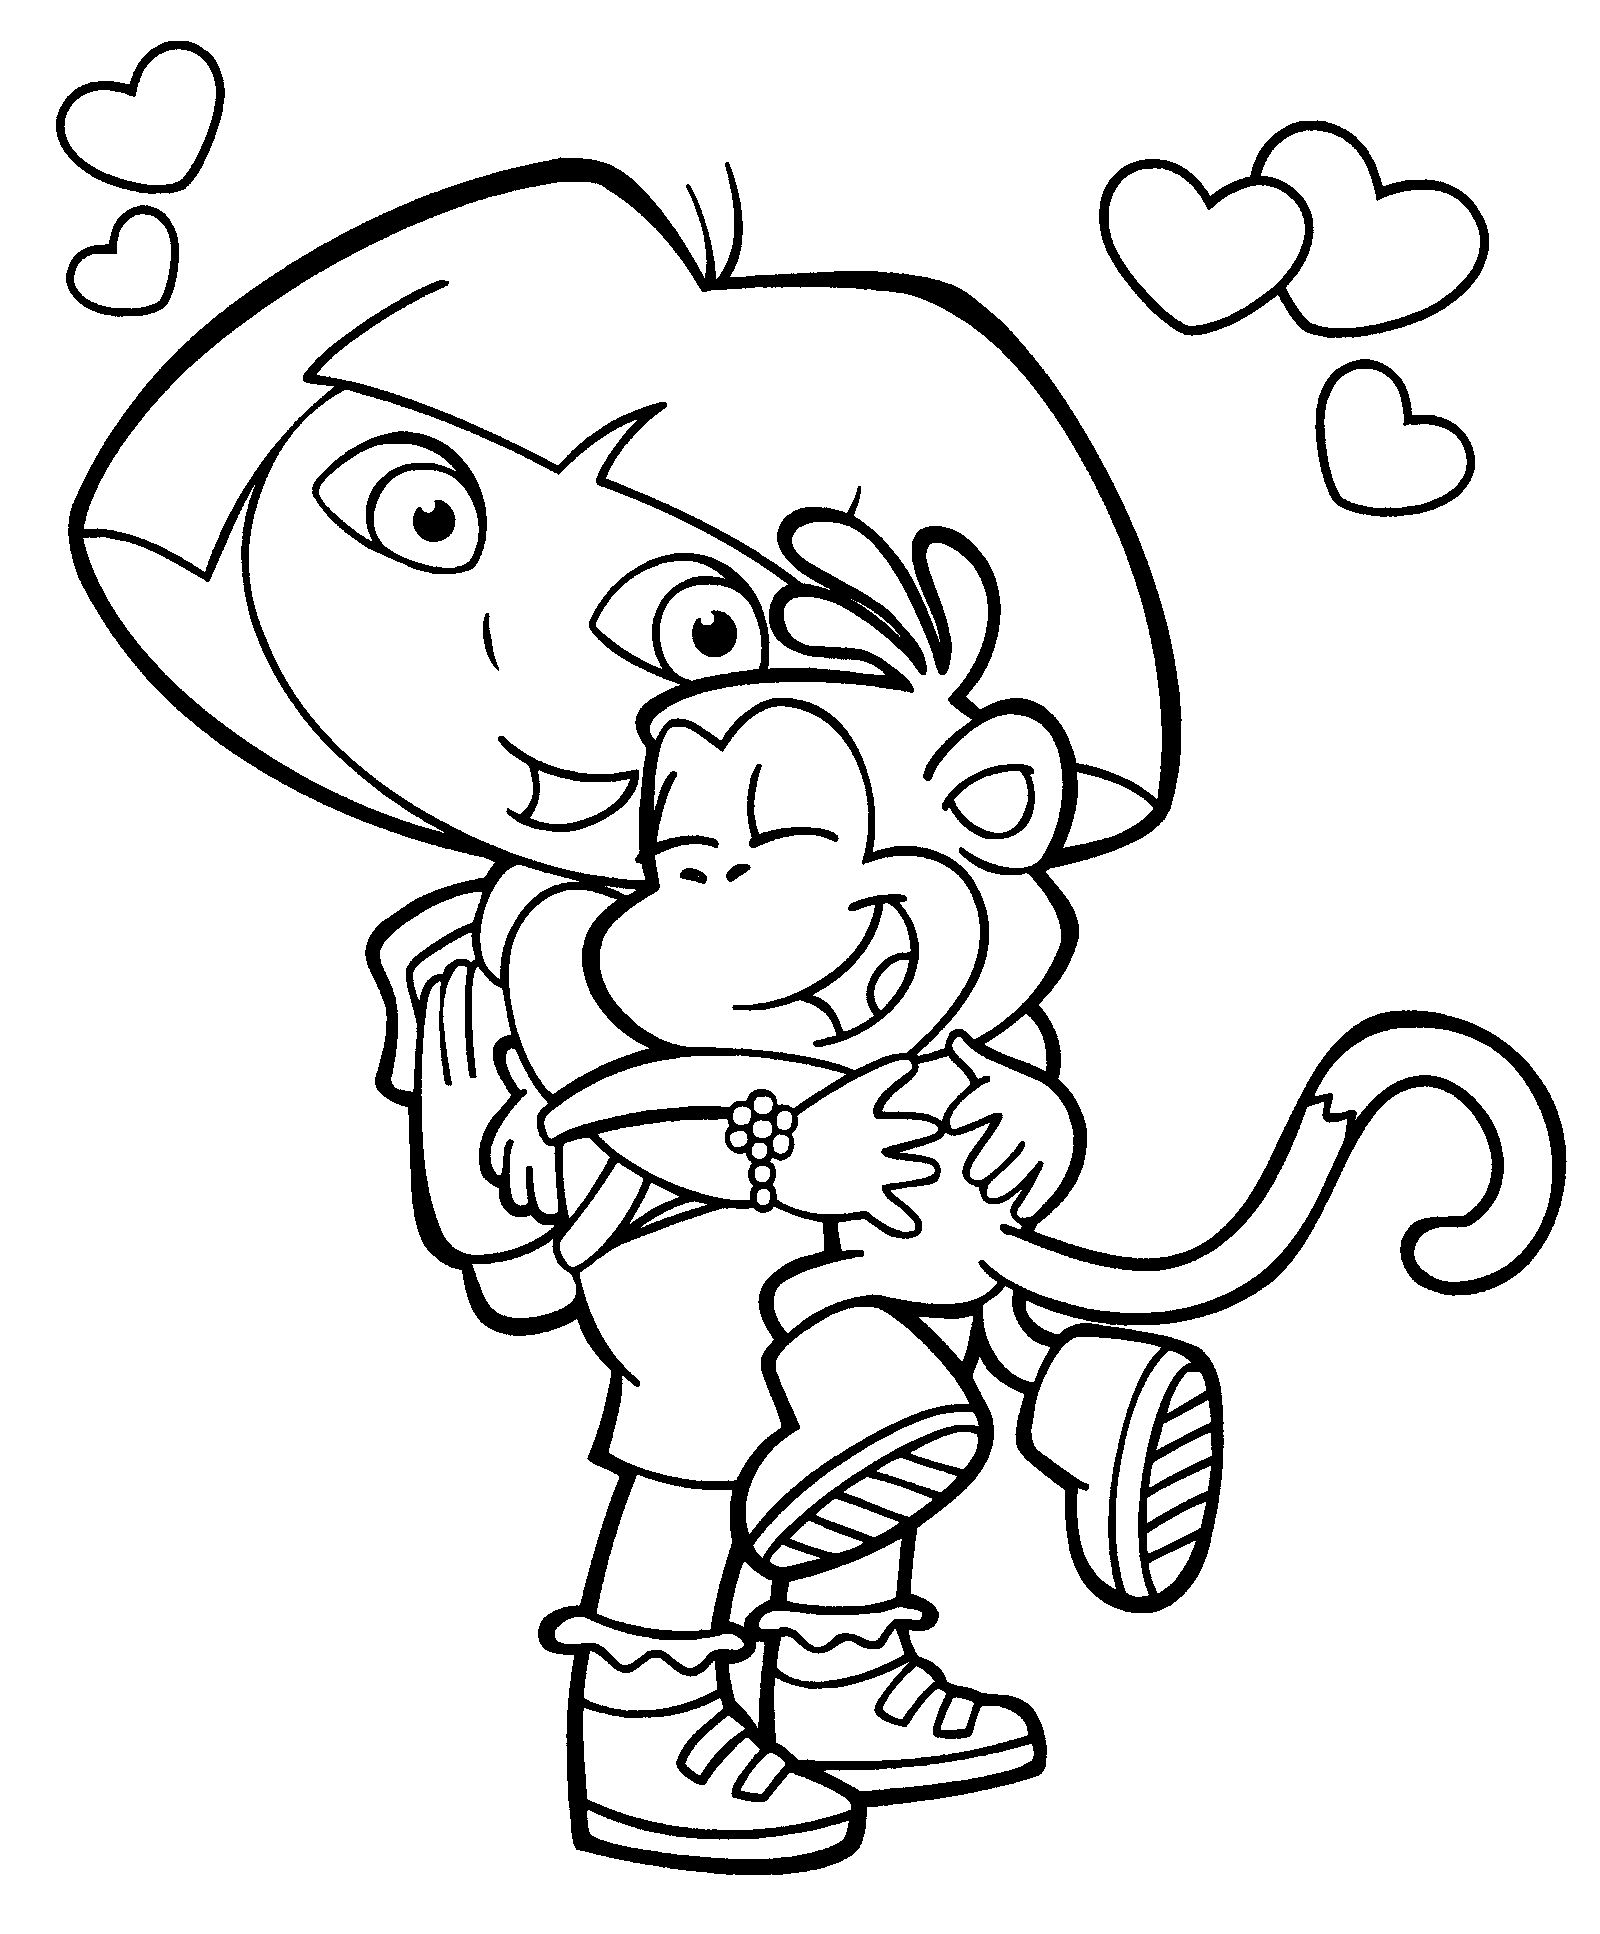 Dora Coloring Lots Of Dora Coloring Pages And Printables Cute Coloring Pages Dora Coloring Cartoon Coloring Pages